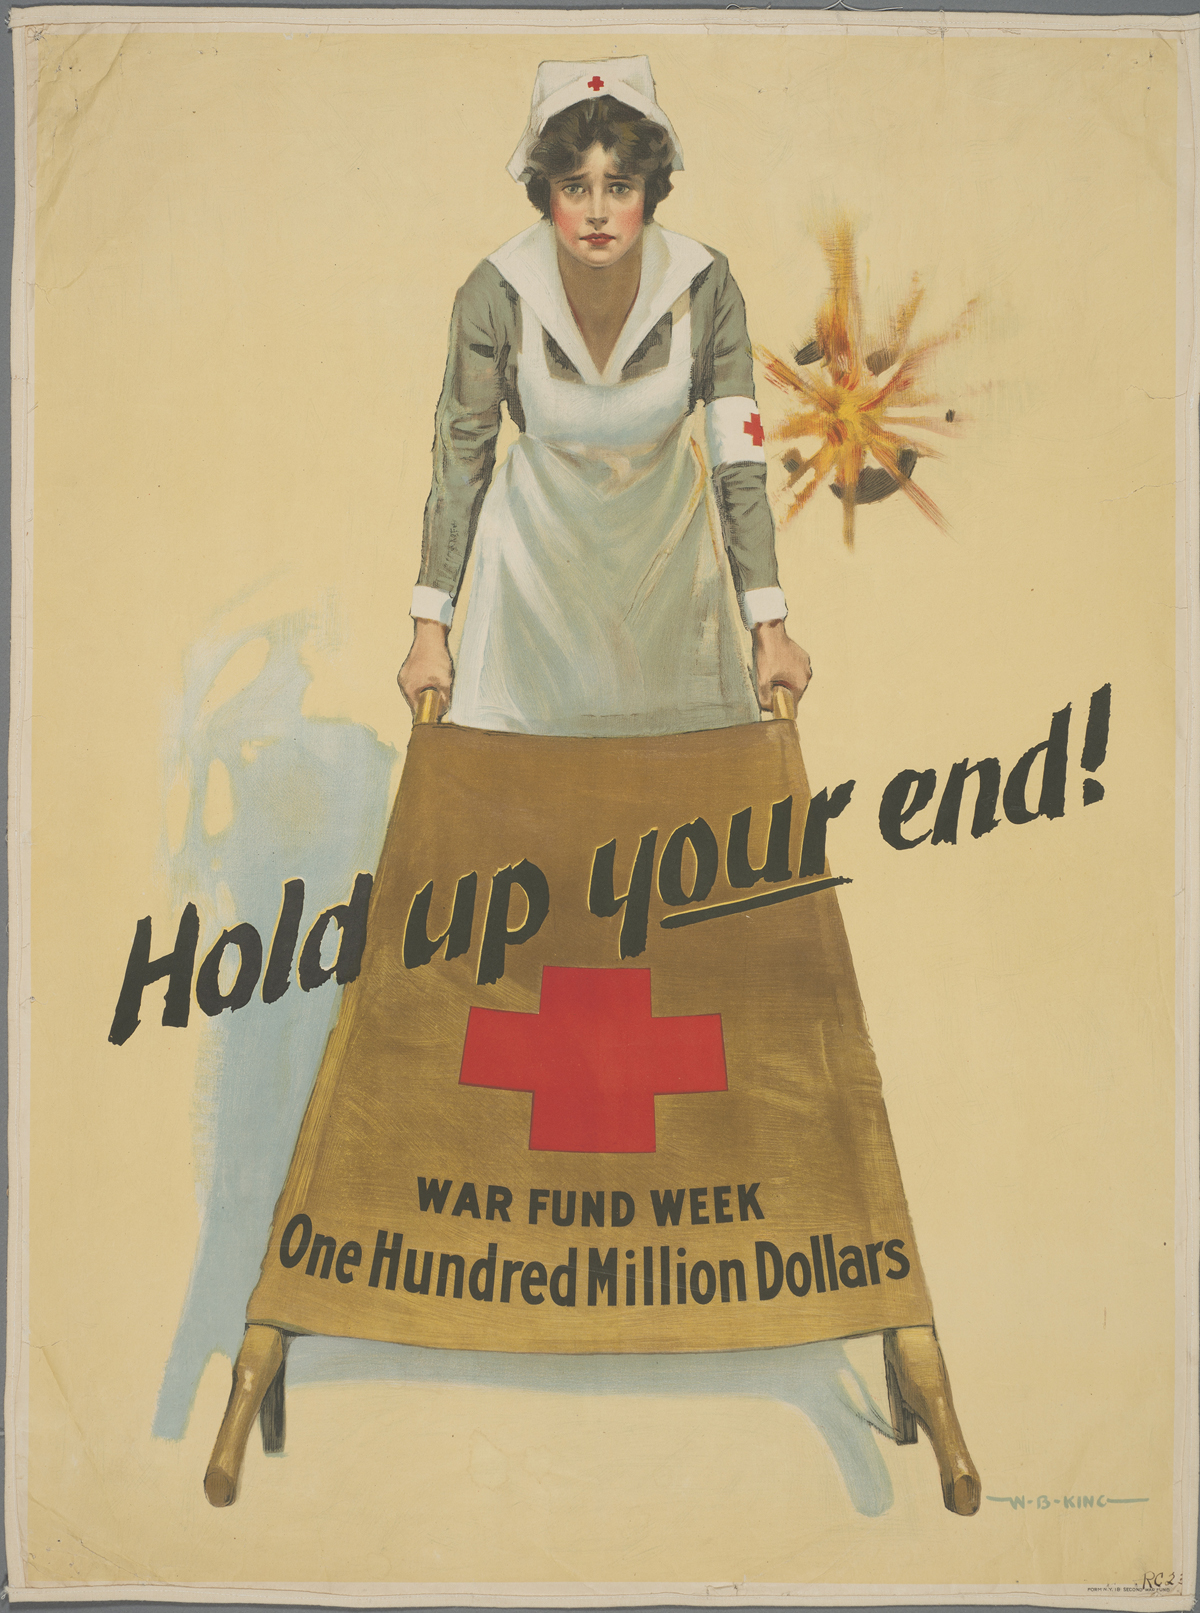 wartime propaganda world war i Ideas for wwi propaganda poster by the agency's main focuses were promoting patriotism and drumming up public support for the ongoing war effort during world war i such as recruitment or supporting the war through the purchase of war bonds wartime propaganda posters should contain.